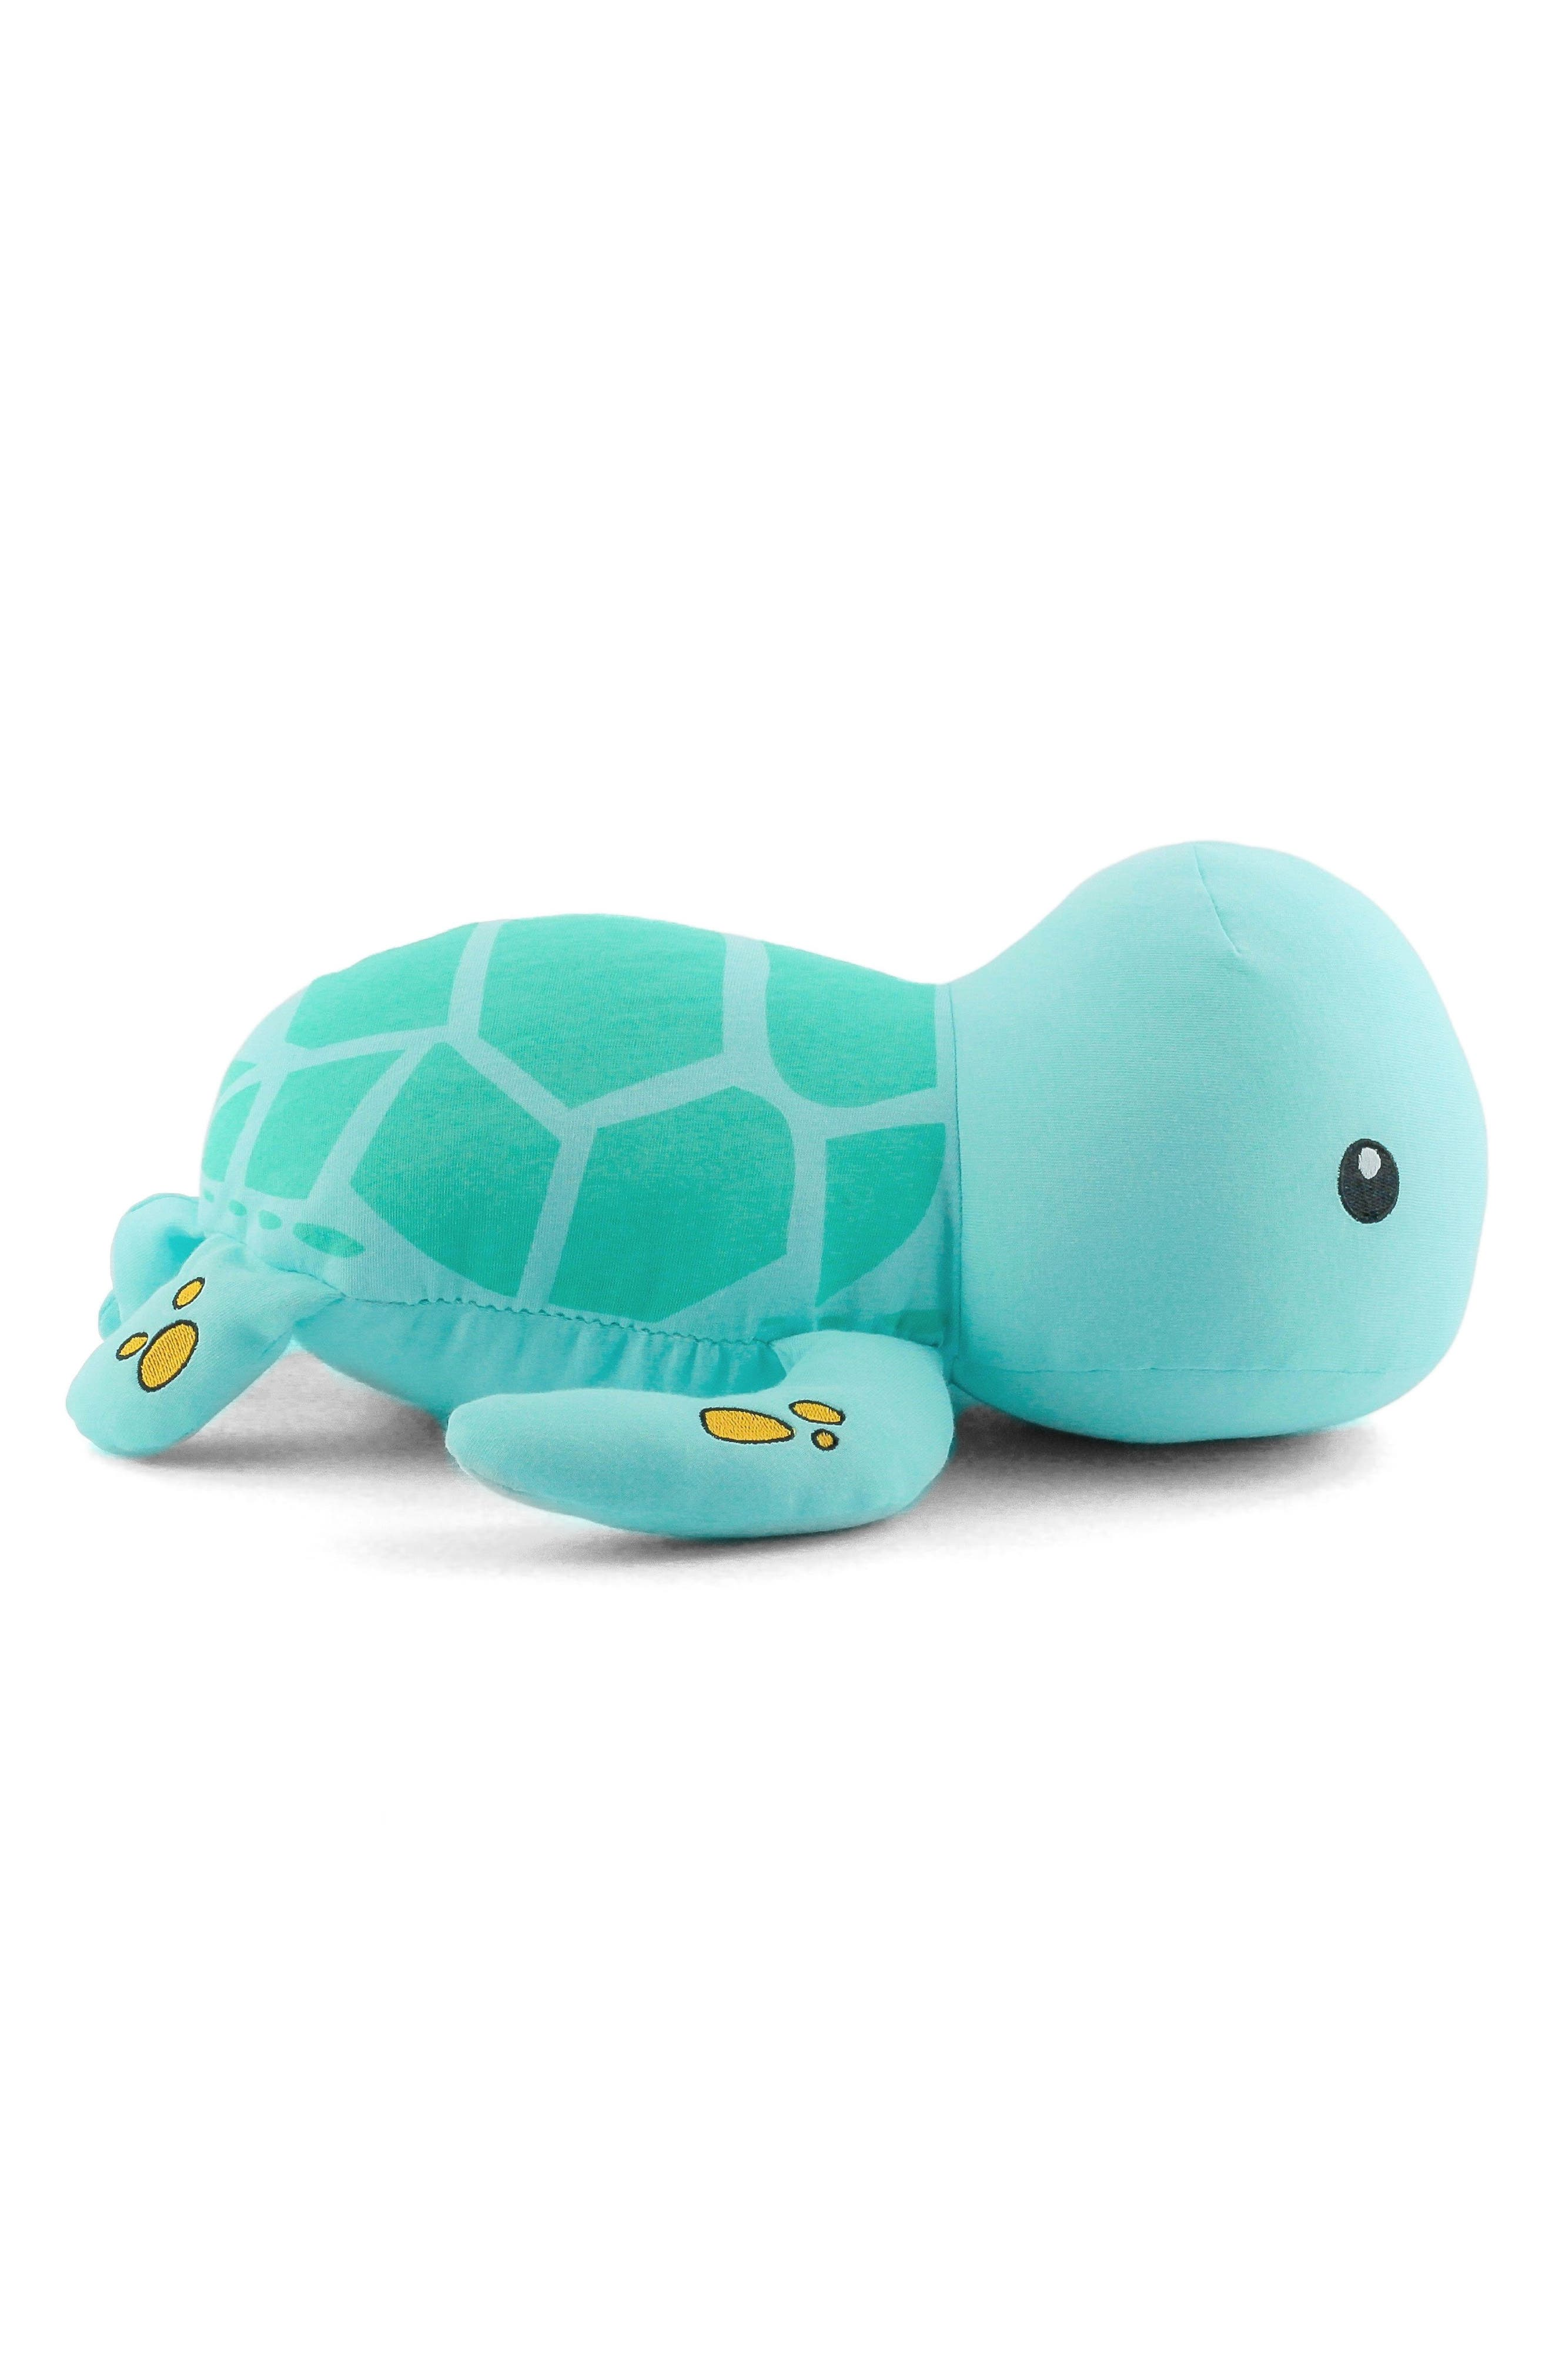 Small Tucker Turtle Stuffed Animal,                         Main,                         color, 440